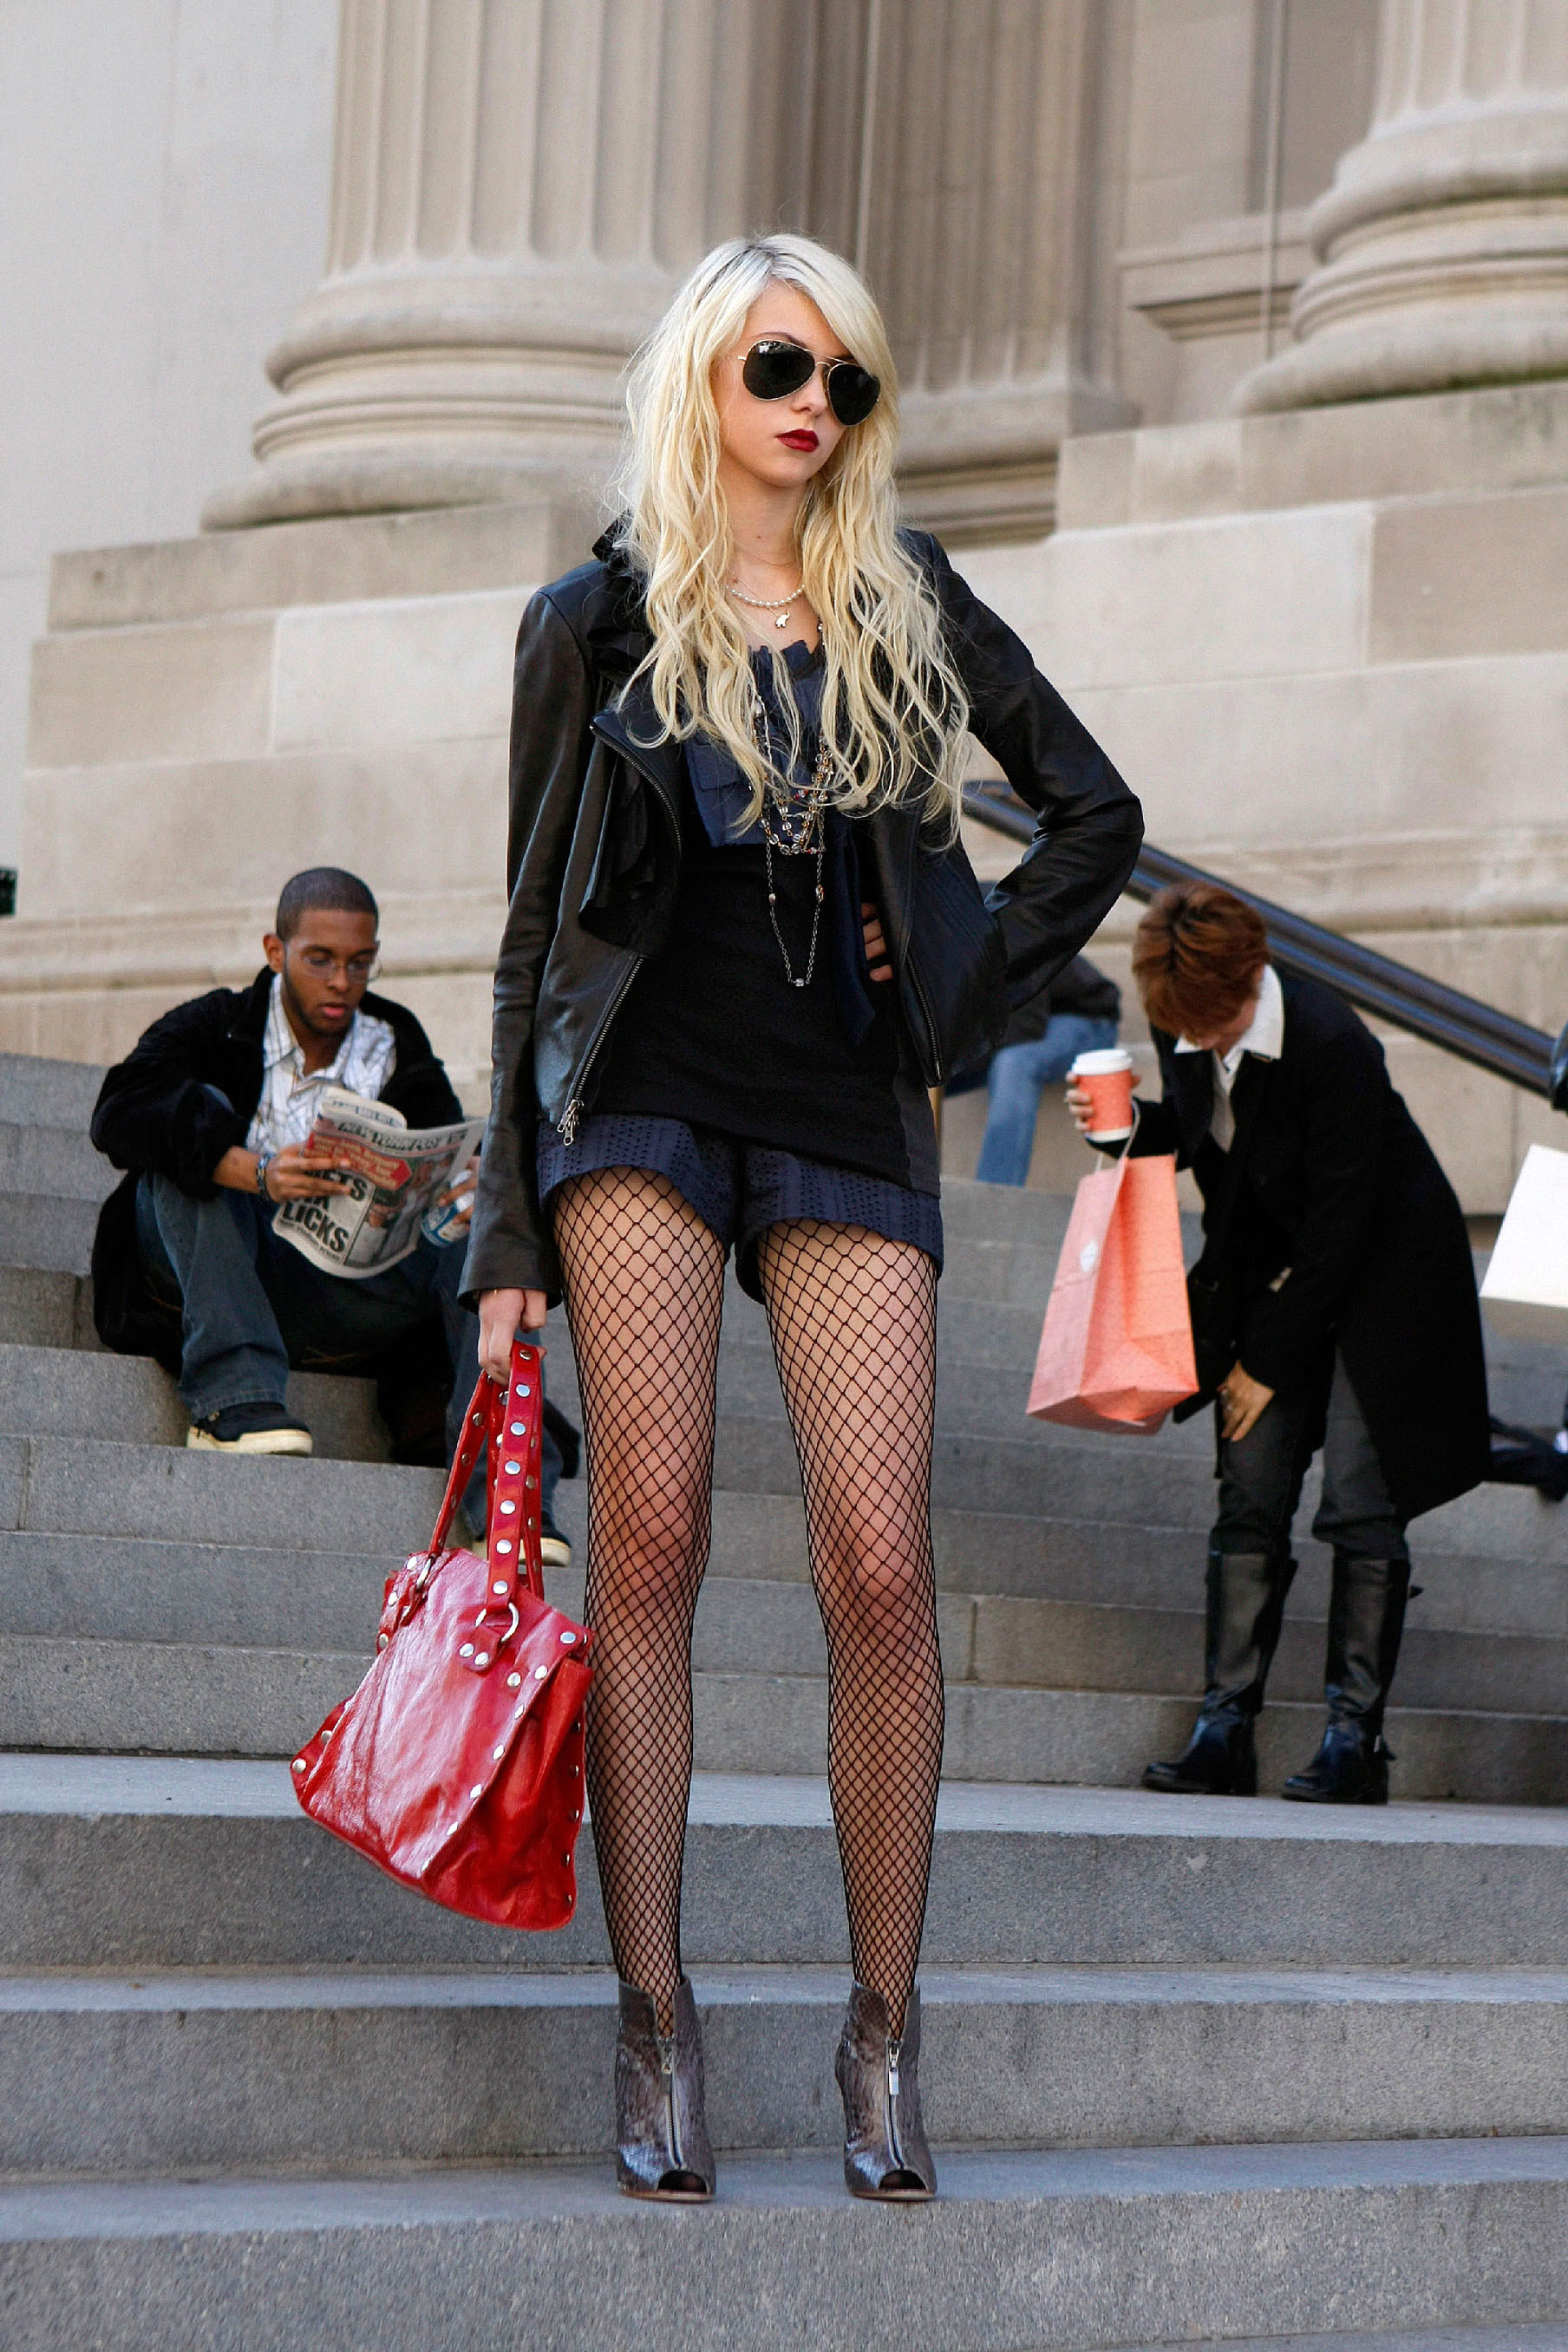 Jenny in a romper with a leather jacket and fishnets and a long necklace